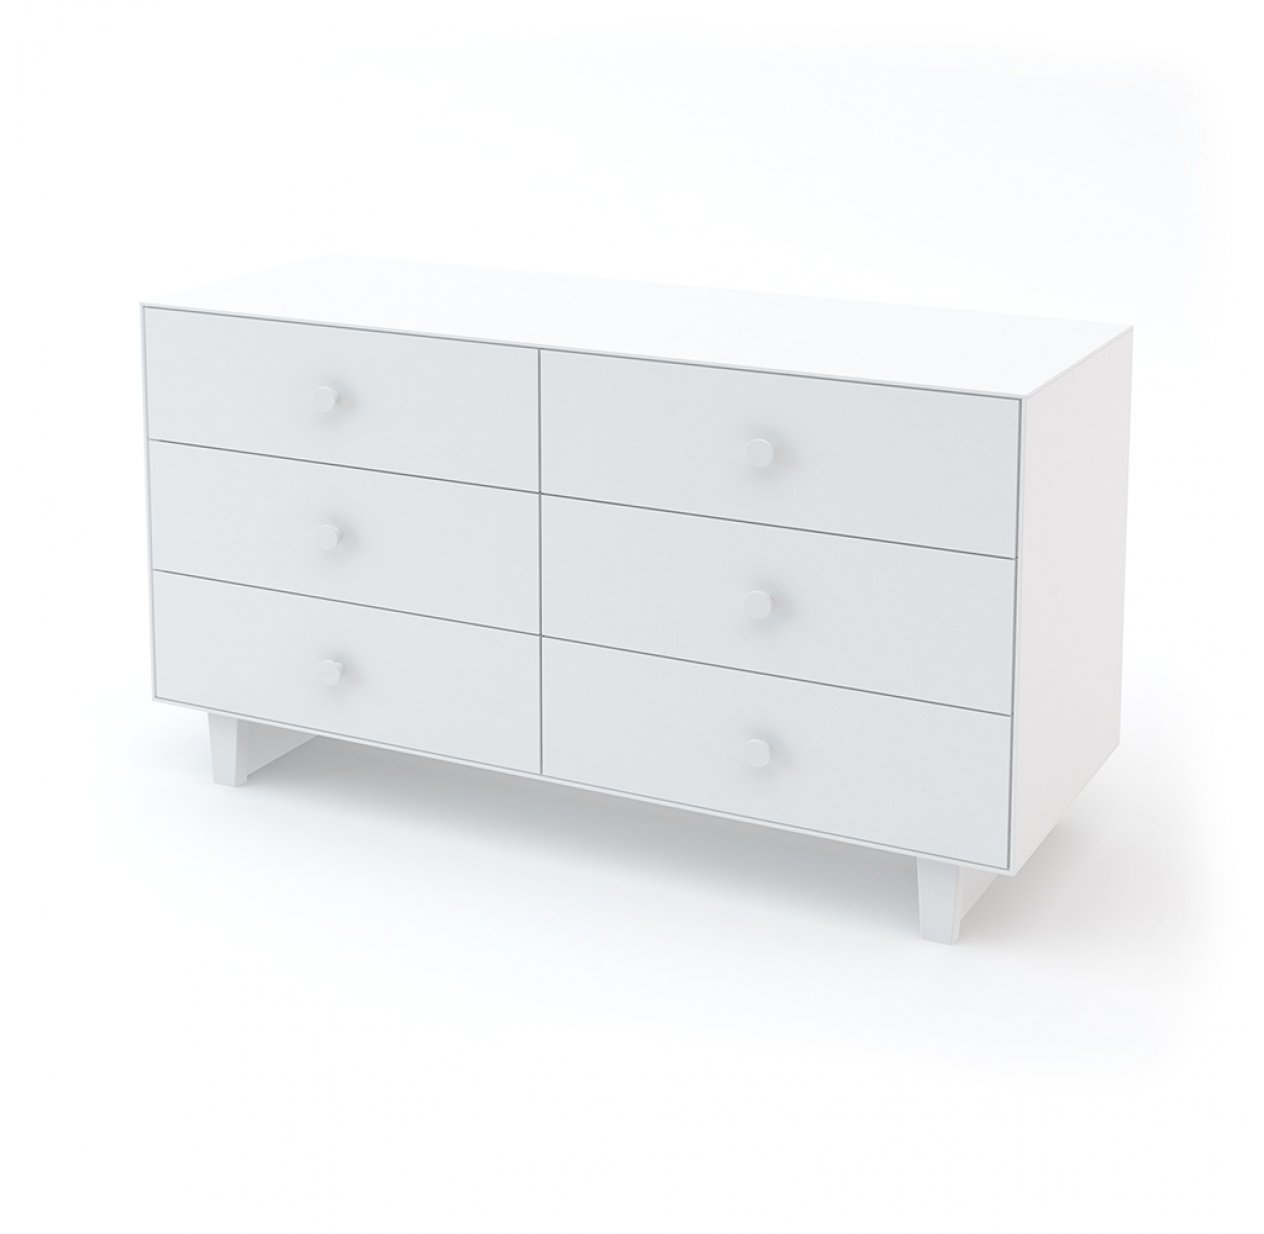 Commode Merlin Rhea 6 tiroirs - Blanc